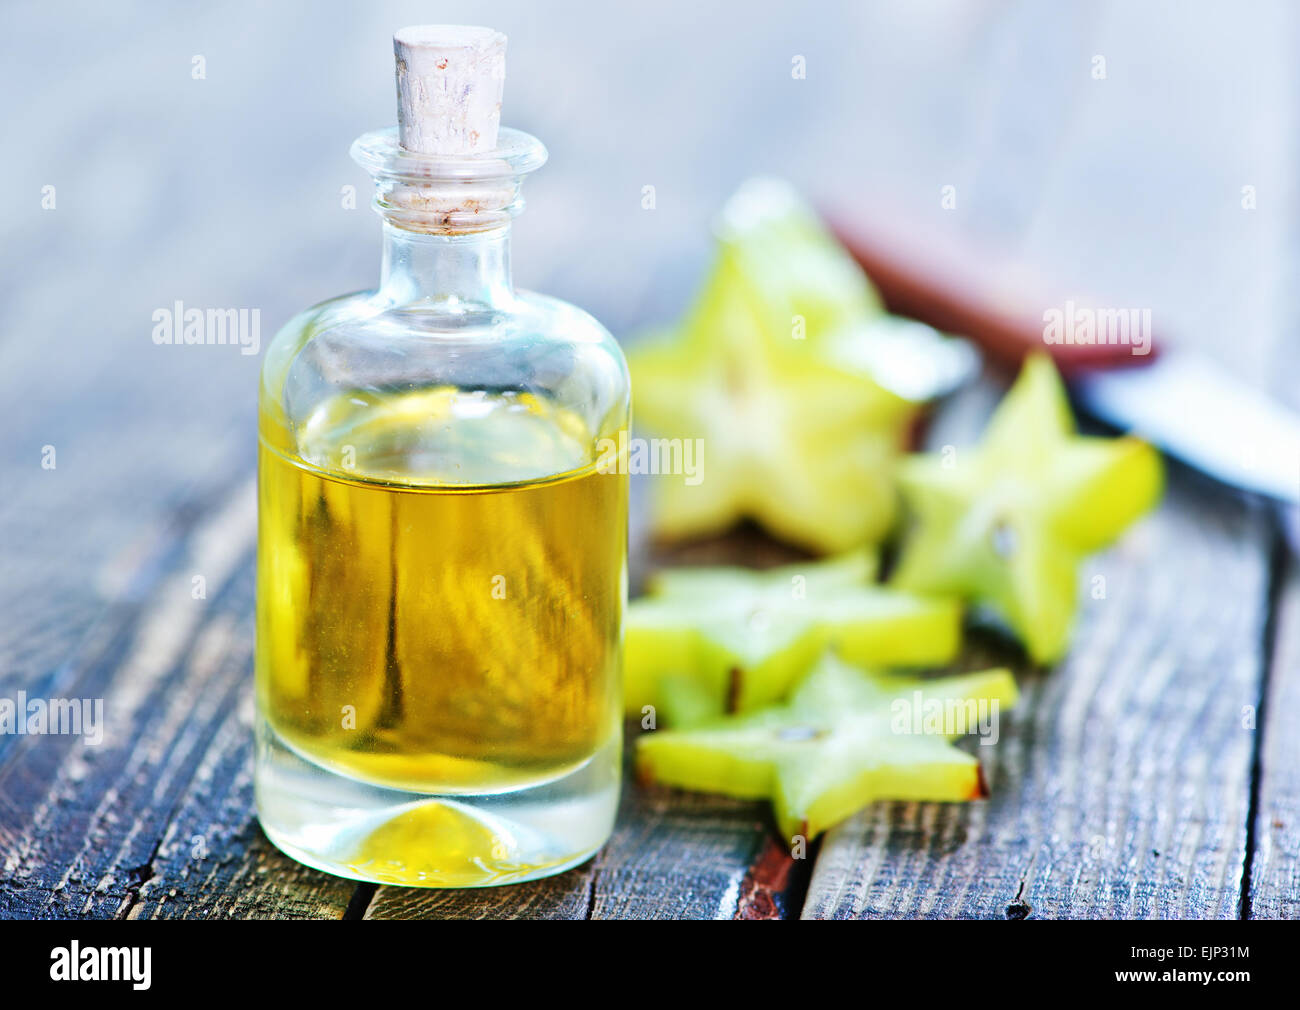 aroma oil in bottle and on a table - Stock Image